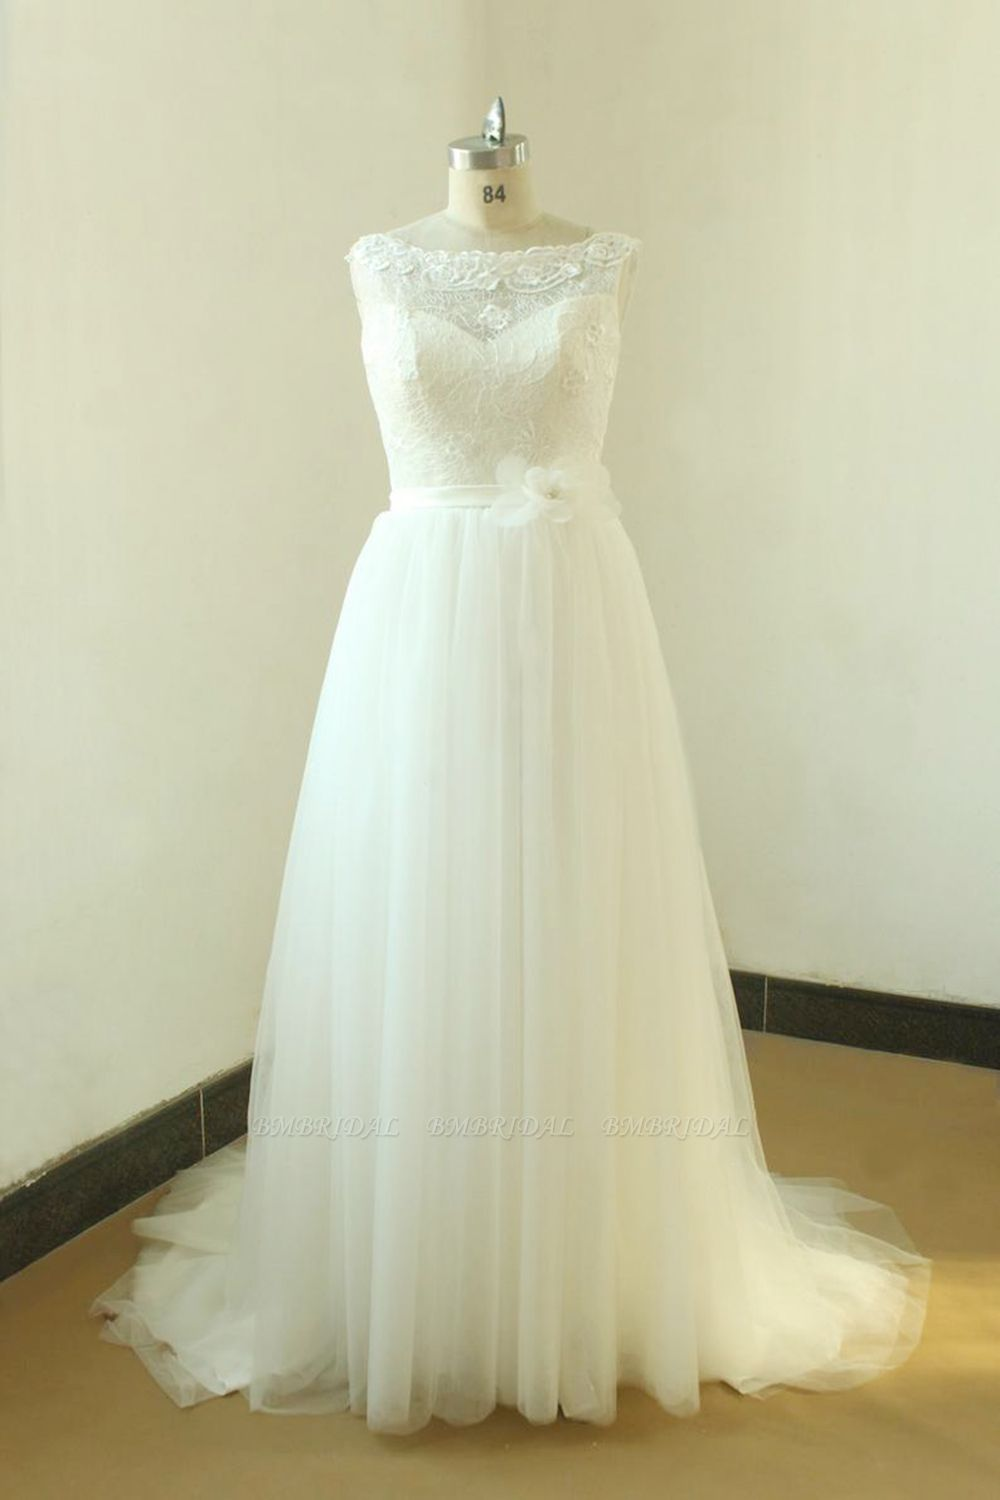 Gorgeous A-line White Lace Tulle Wedding Dress Sleeveless Appliques Bridal Gowns On Sale